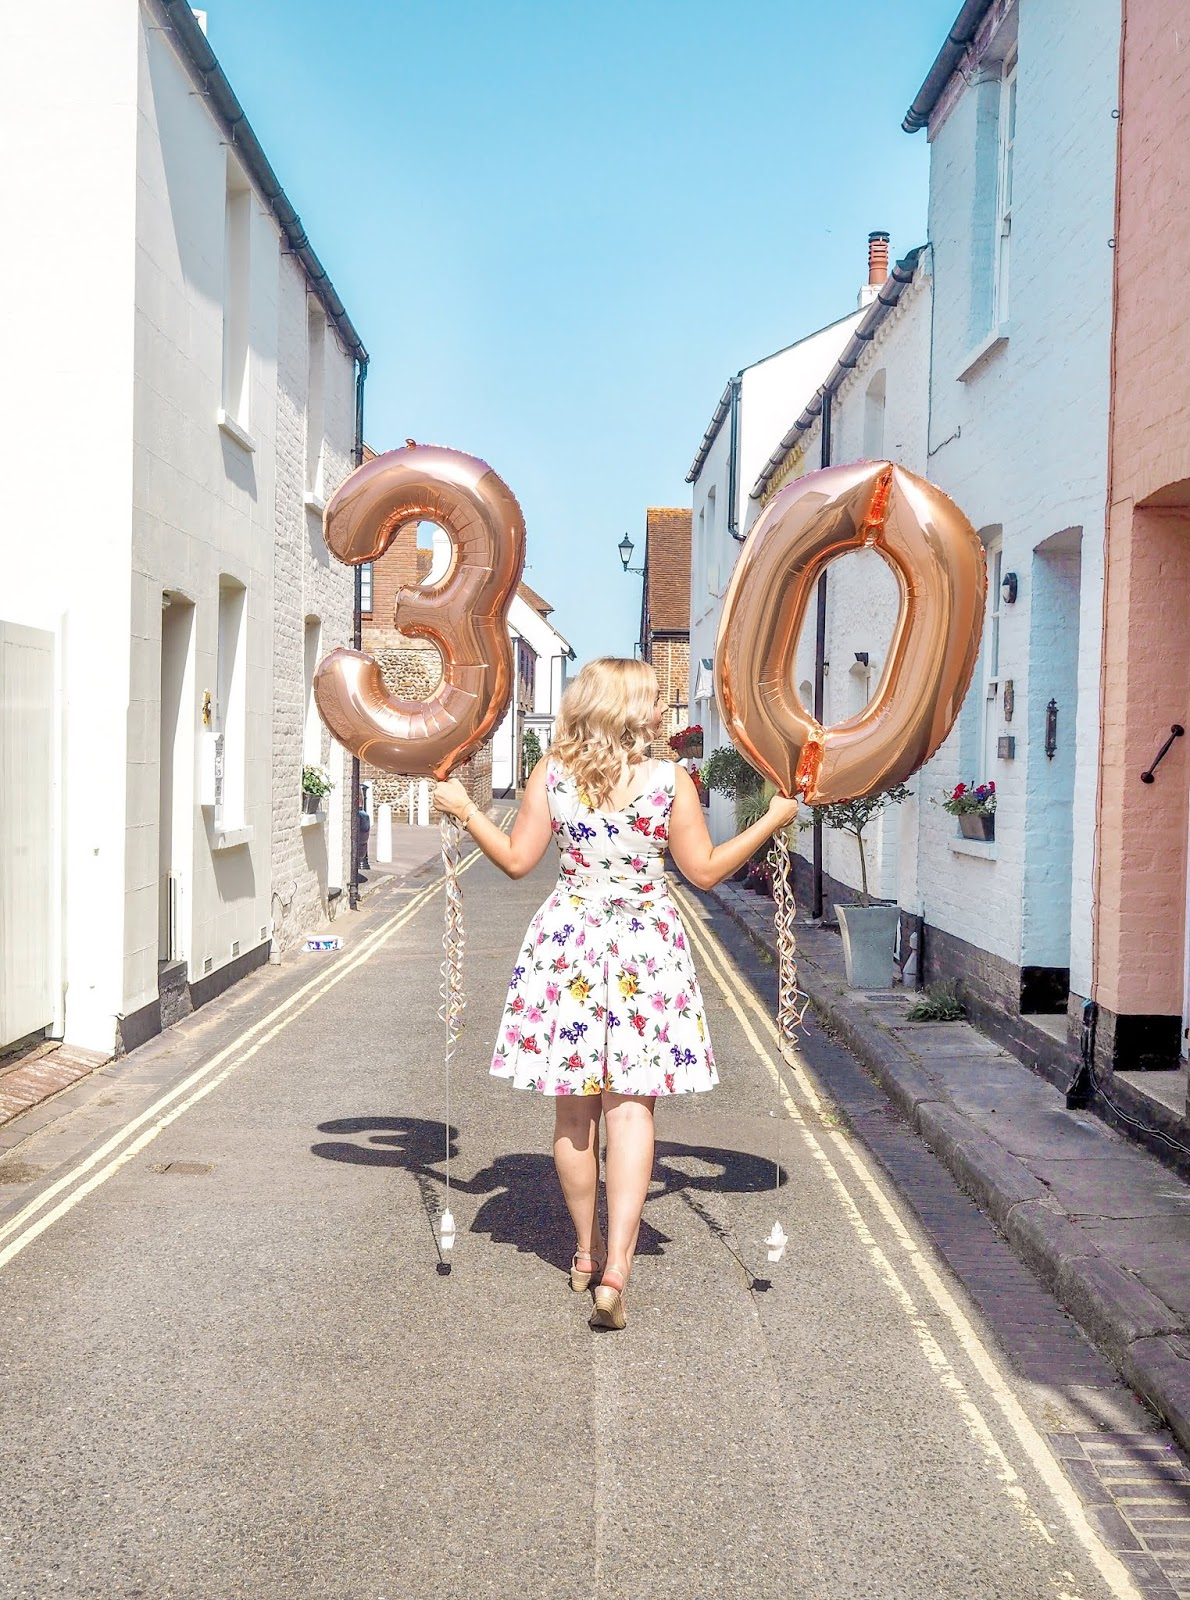 My Feelings On Turning 30, Katie Kirk Loves, UK Blogger, 30th Birthday, 30 Flirty and Thriving, UK Fashion Blogger, UK Lifestyle Blogger, Turning 30 In Style, Over 30s Fashion, 30 and Fabulous, Milestone Birthday, Party Blogger, Vintage Tea Dress